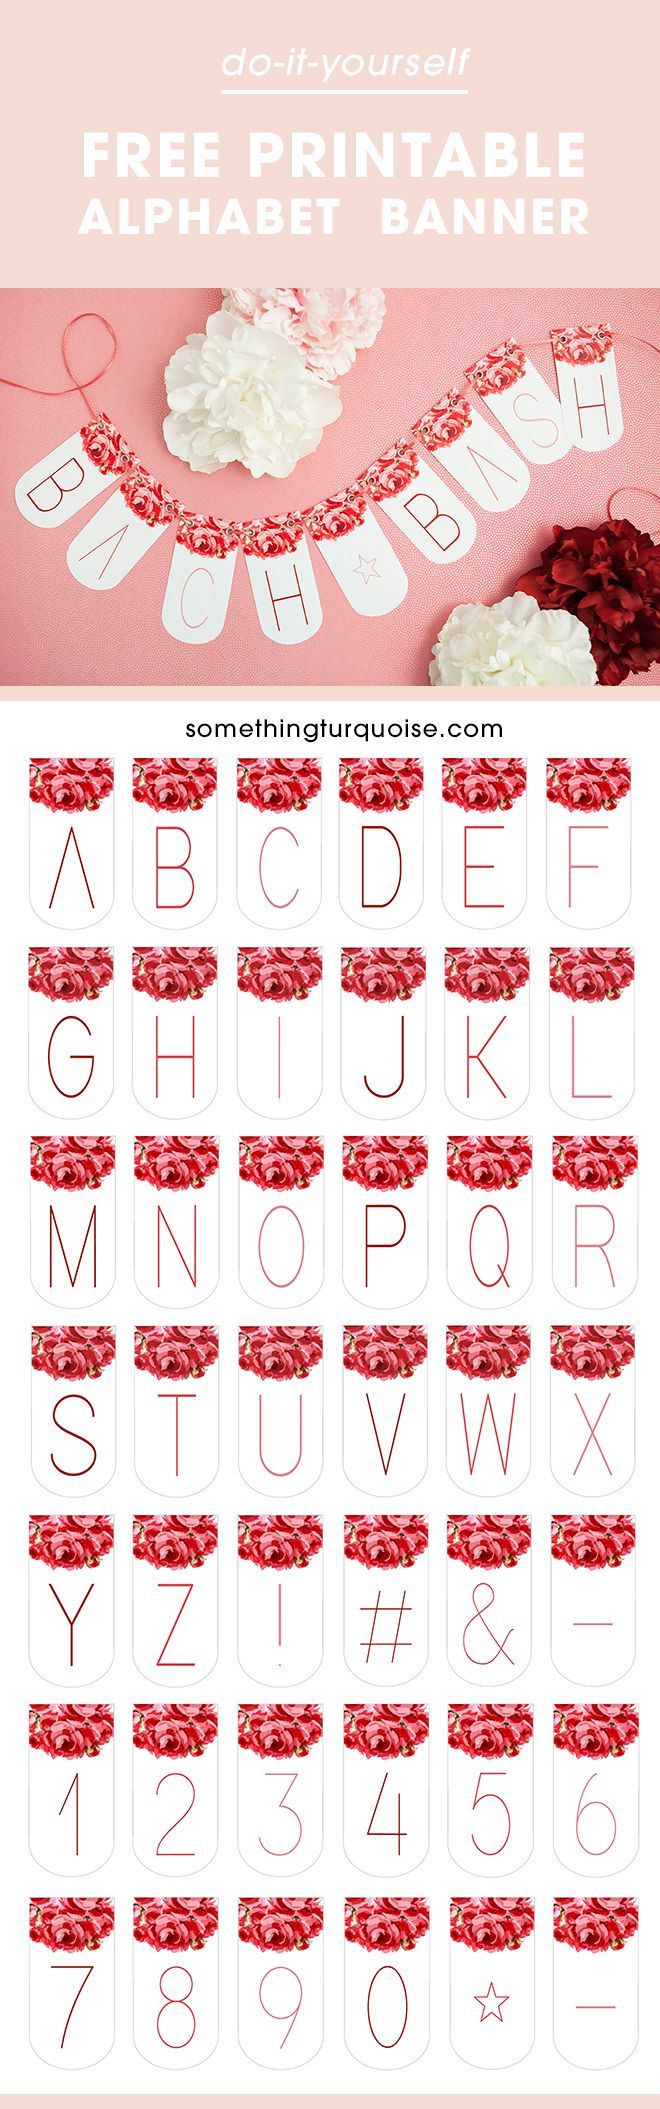 Check Out This Adorable Free Printable Alphabet Banner